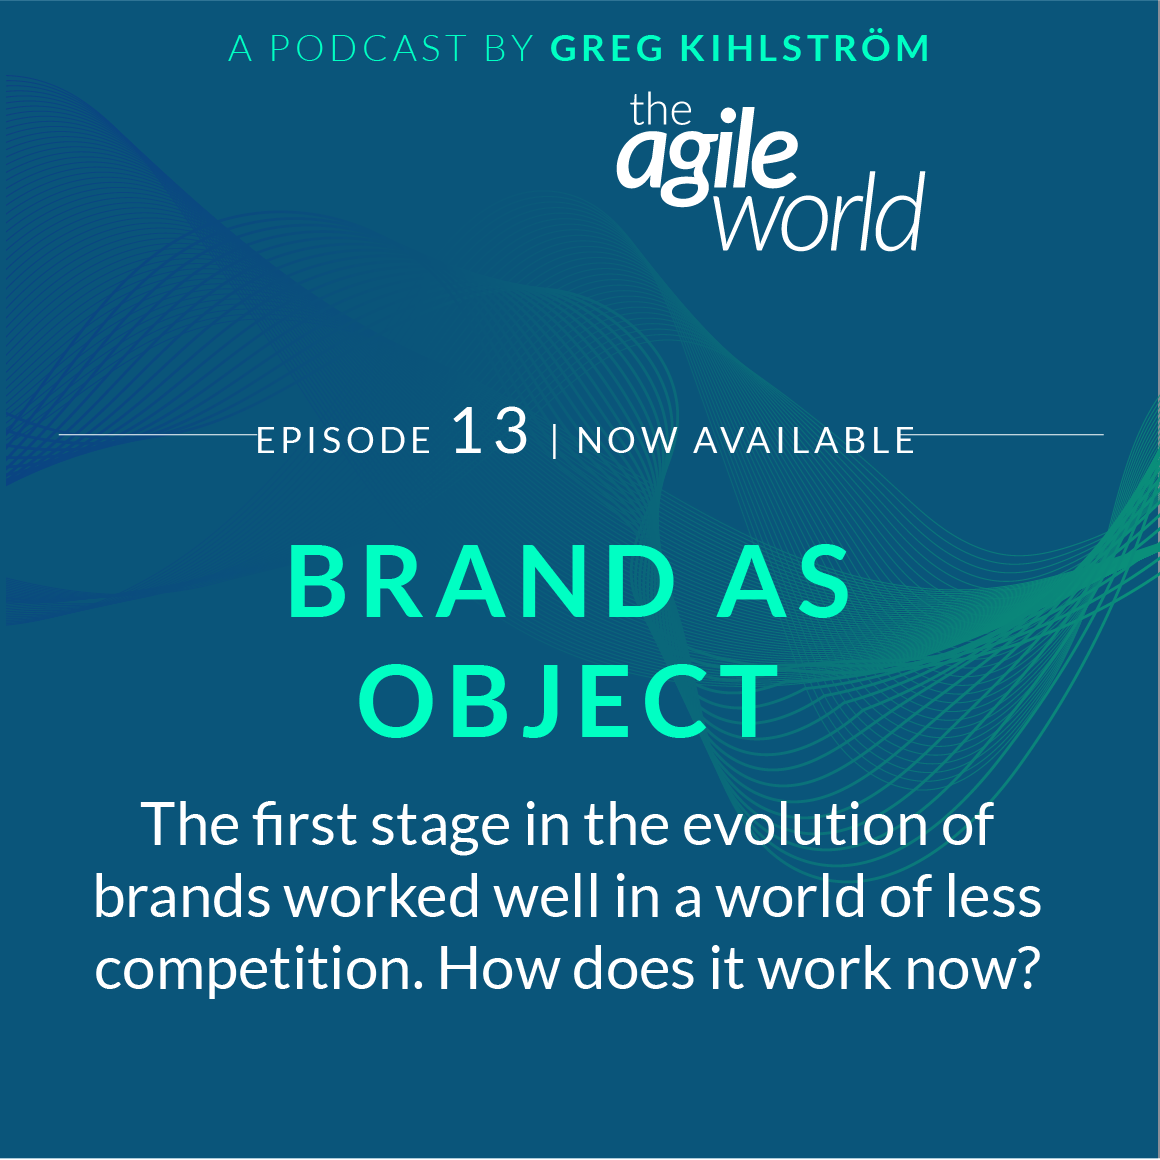 The-Agile-World-Greg-Kihlstrom-Episode-13.png